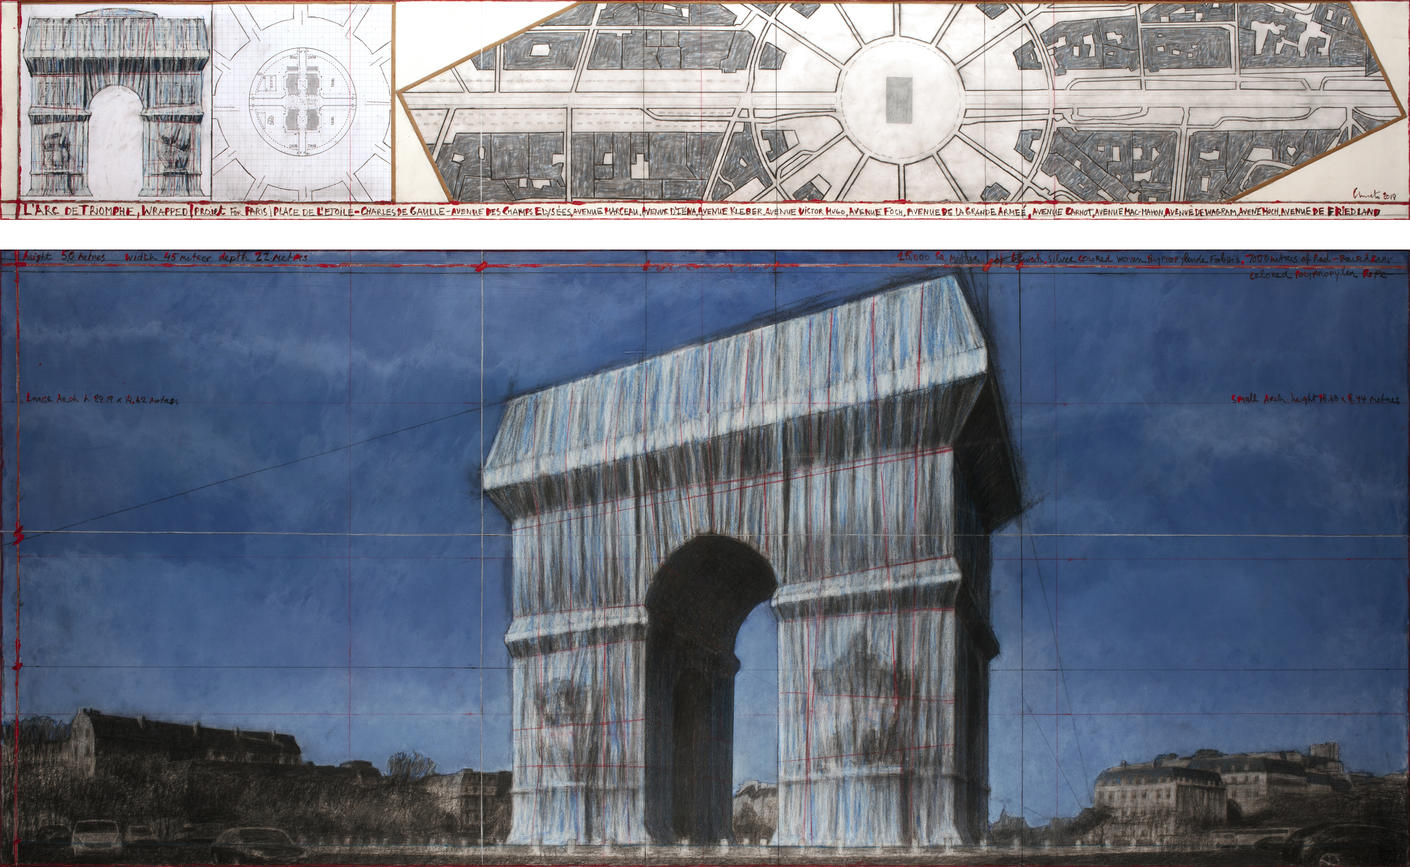 Christo L'Arc de Triomphe, Wrapped (Project for Paris) Place de l'Etoile – Charles de Gaulle Drawing 2019 in two parts Photo: André Grossmann © 2019 Christo